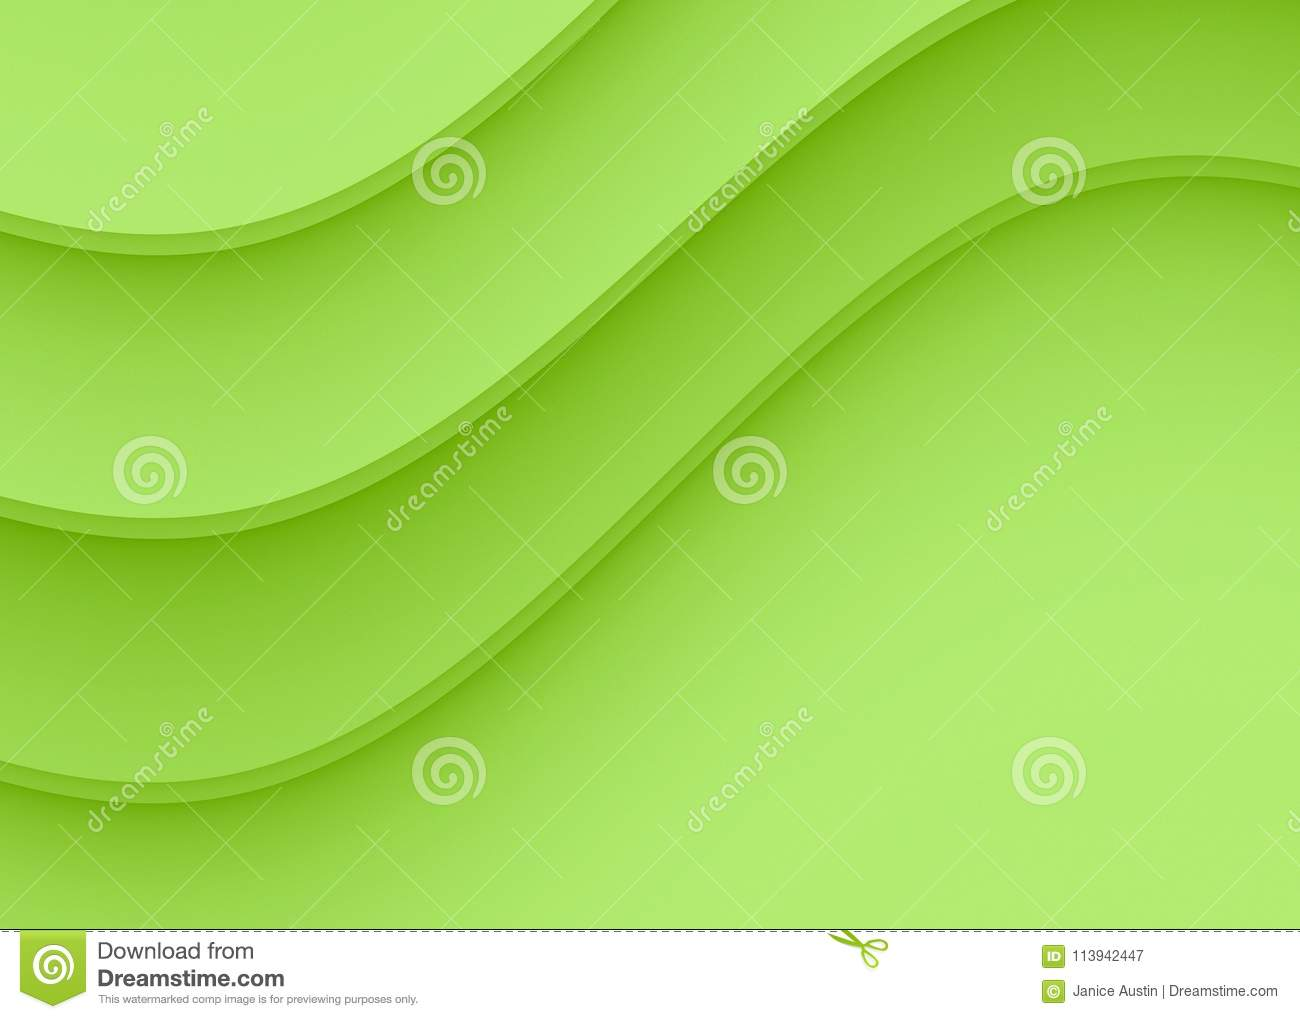 download refreshing lime green smooth gentle curves abstract background design stock vector illustration of colorful